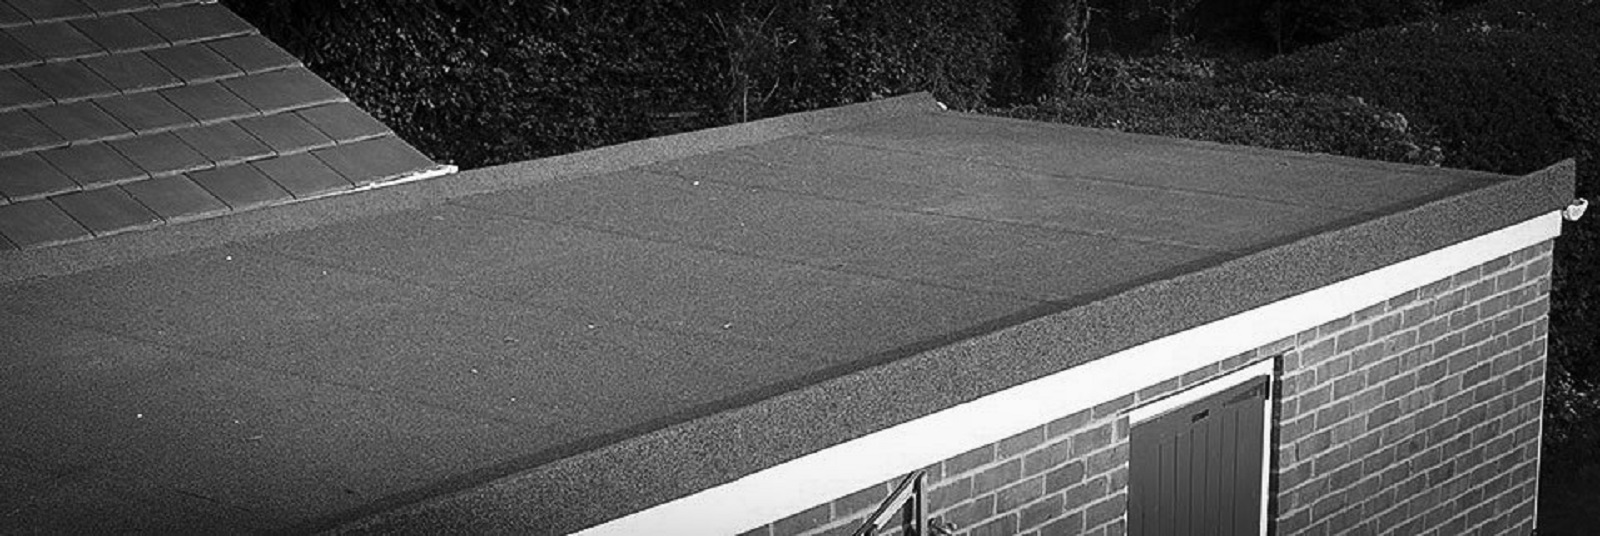 Grp Flat Roofing And Felt Roofing Contractors J Marks Amp Sons